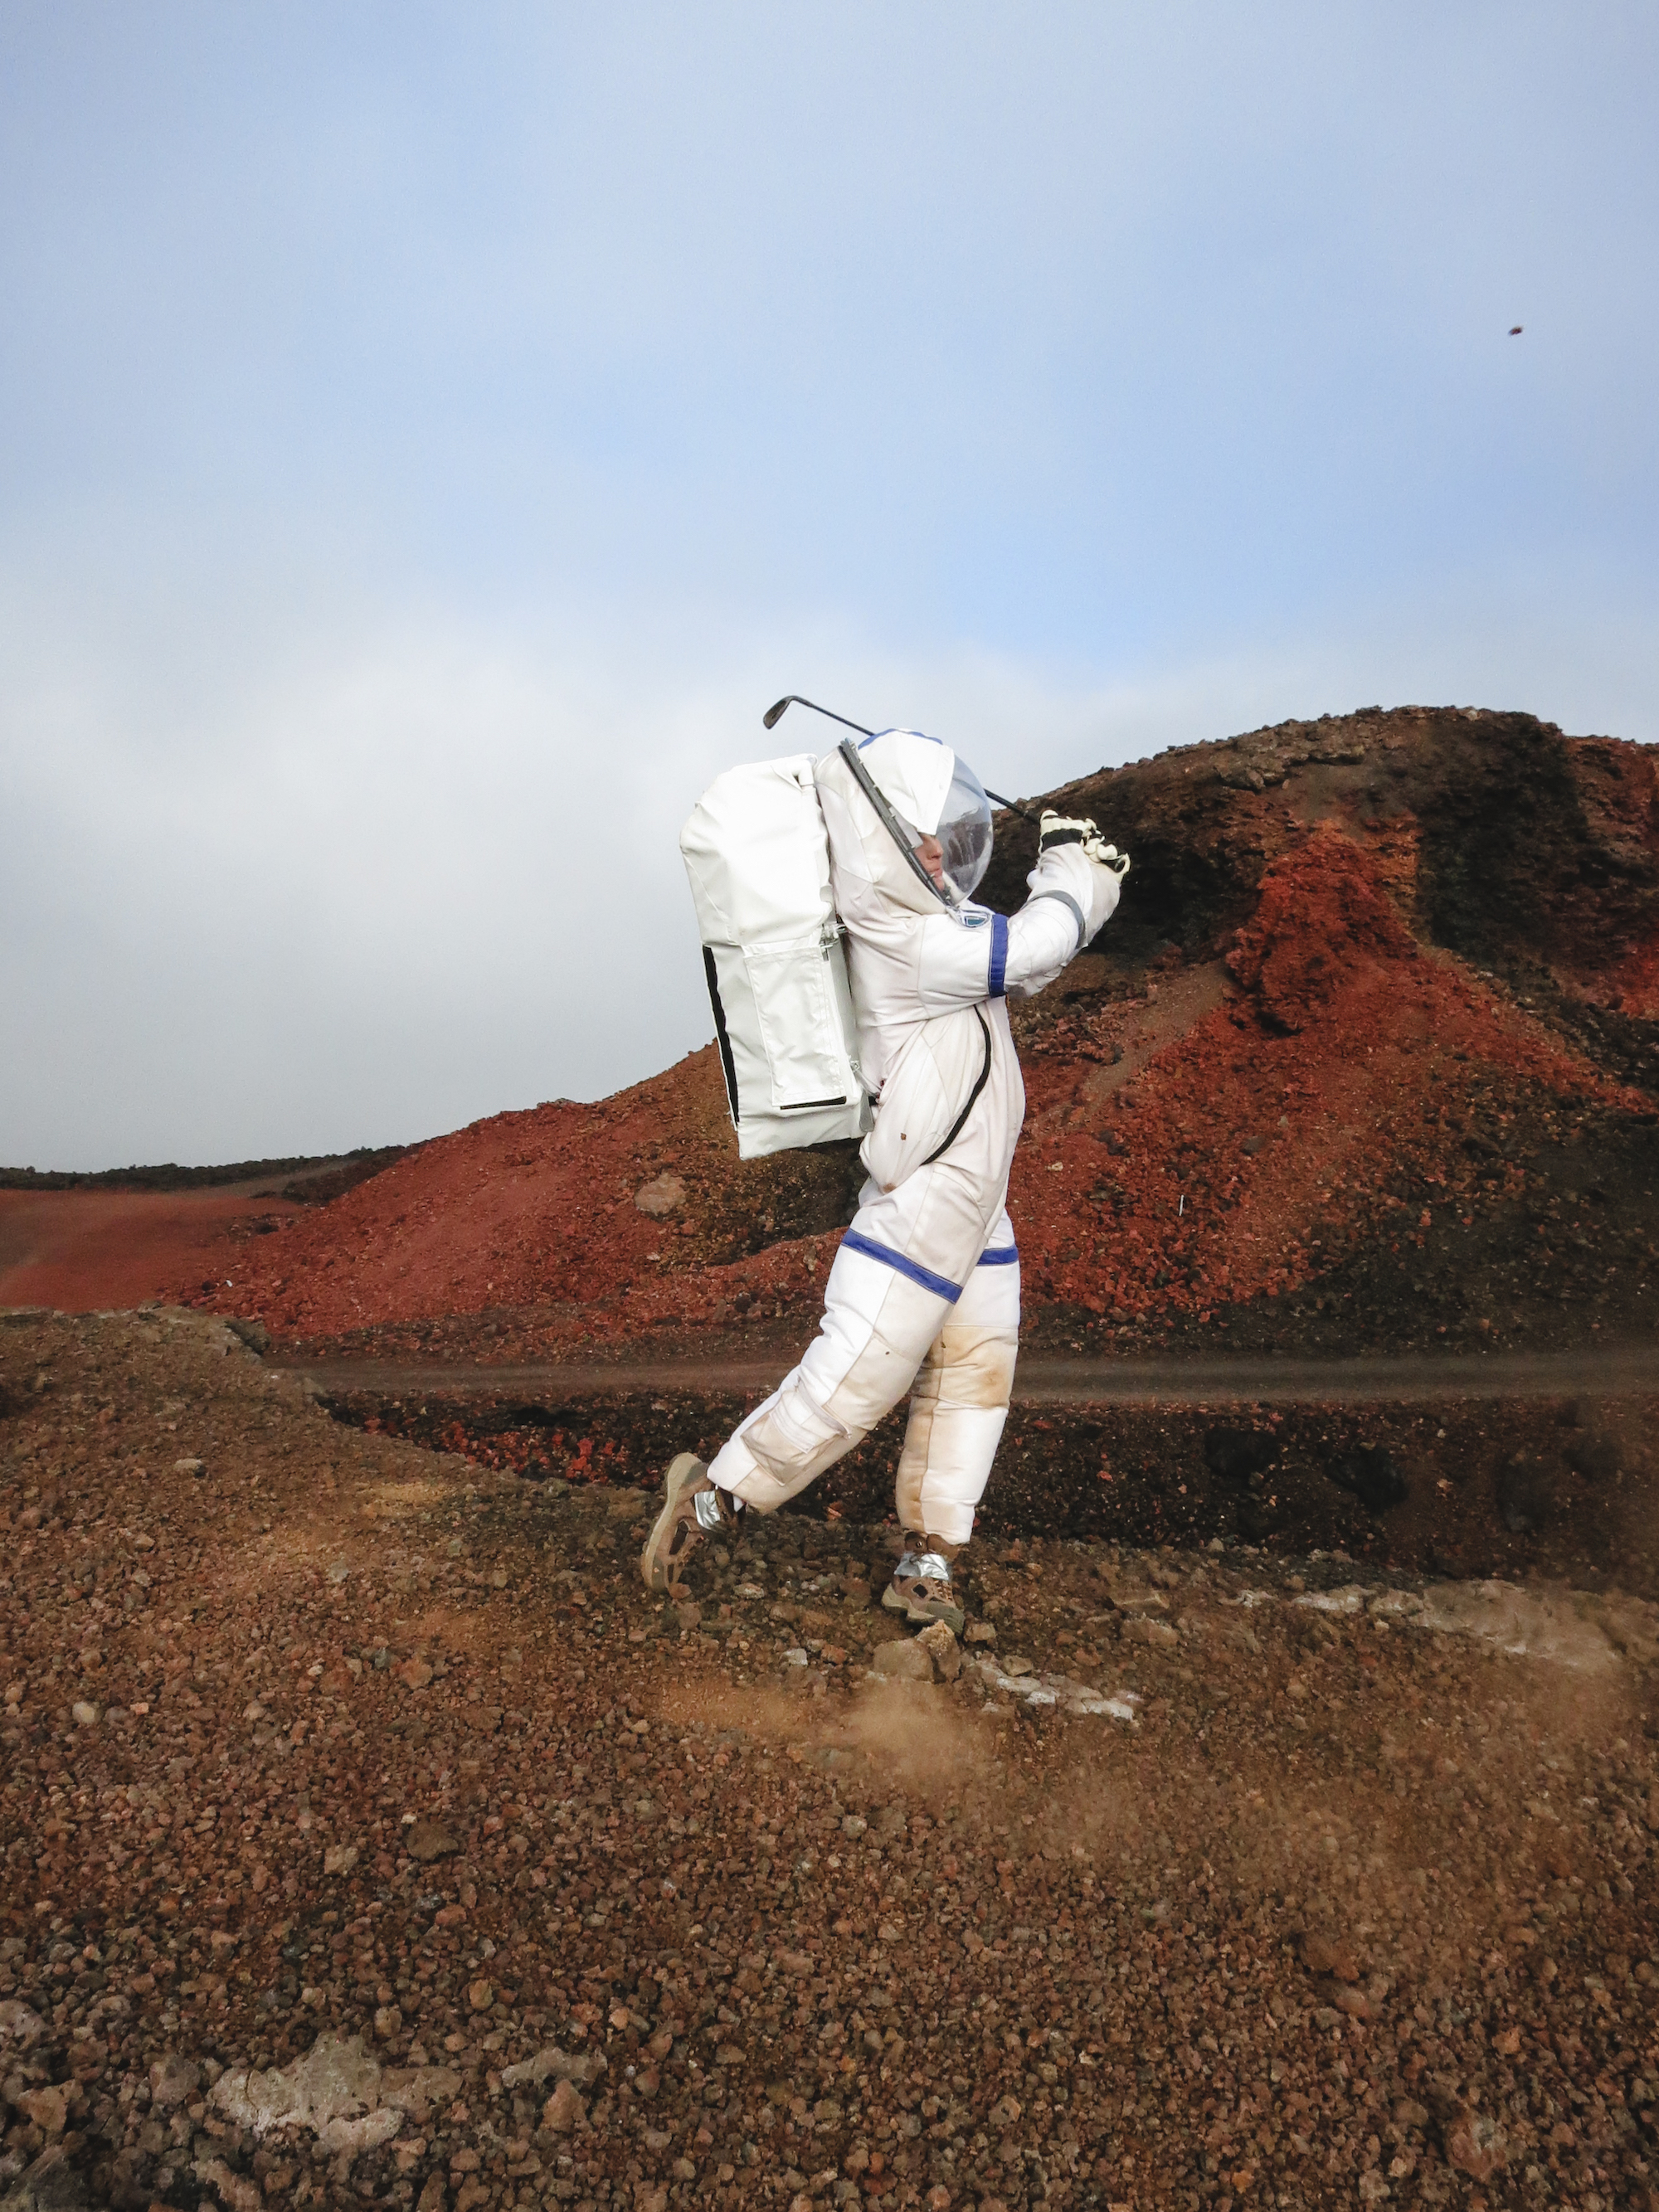 Eight months in a Mars simulation warrants a few swings of the nine iron every now and then.